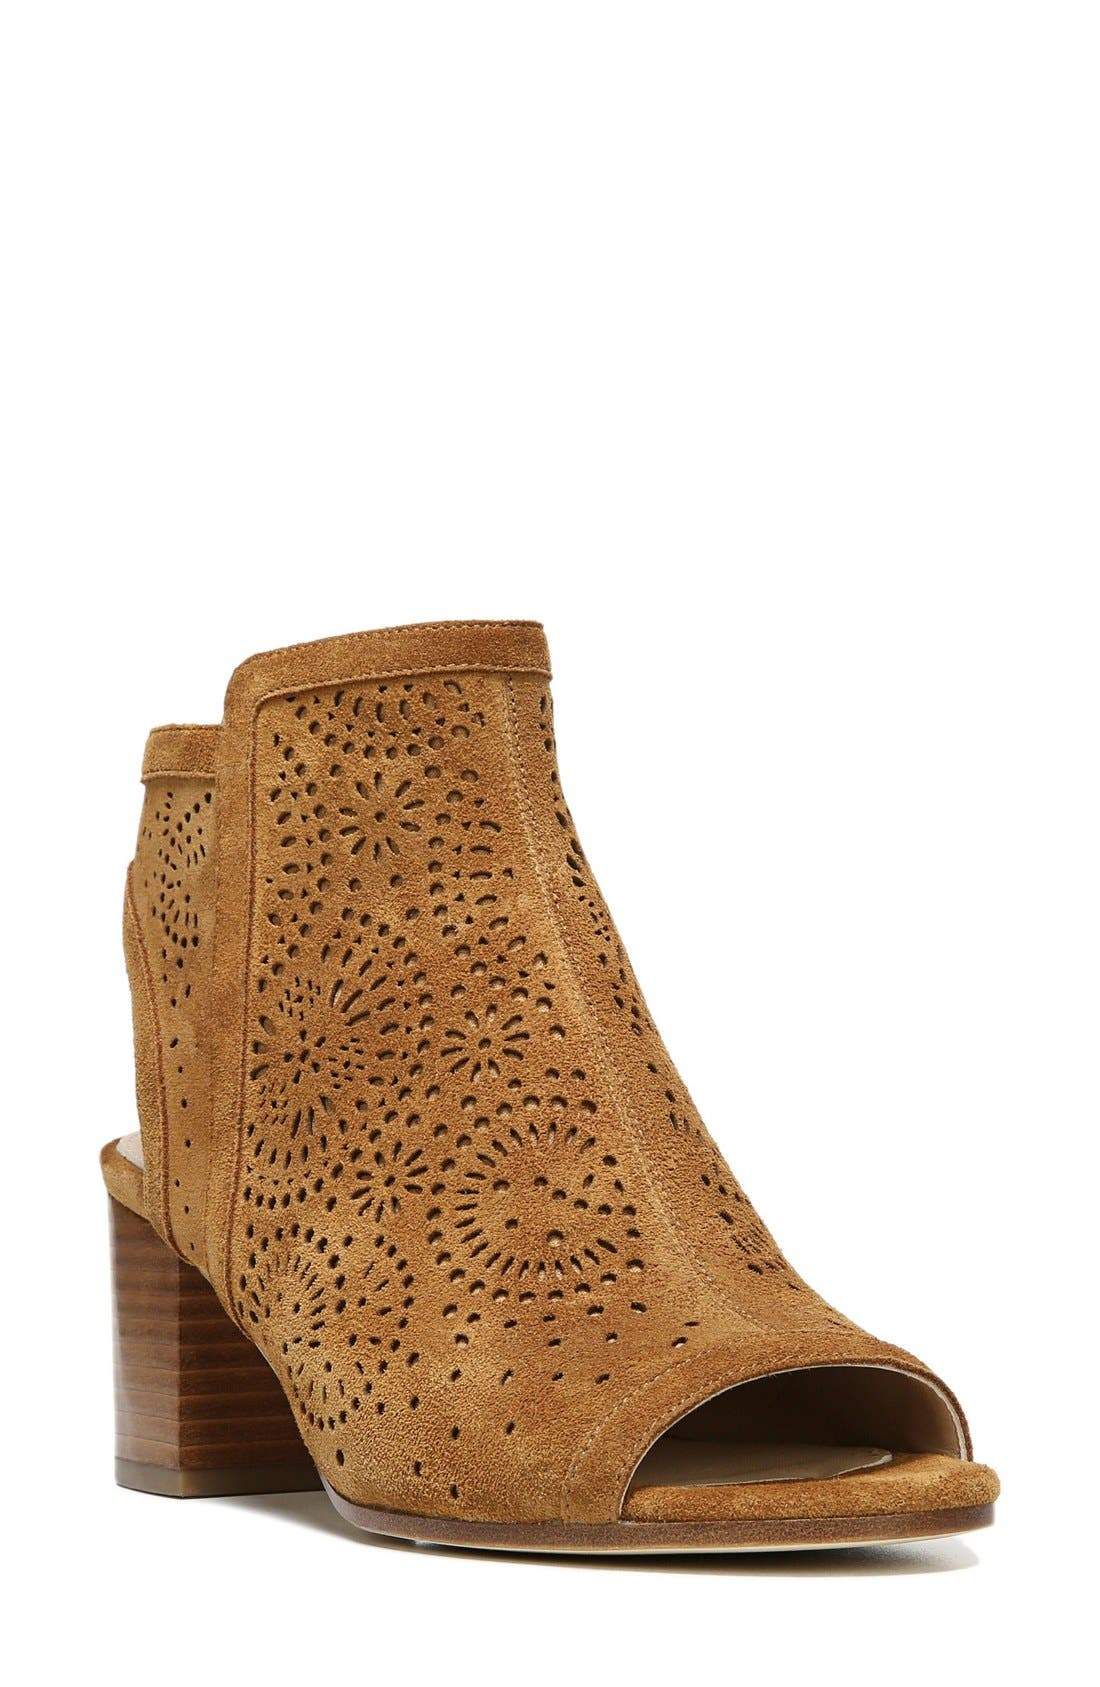 Via Spiga Jorie Perforated Peep Toe Sandal (Women)